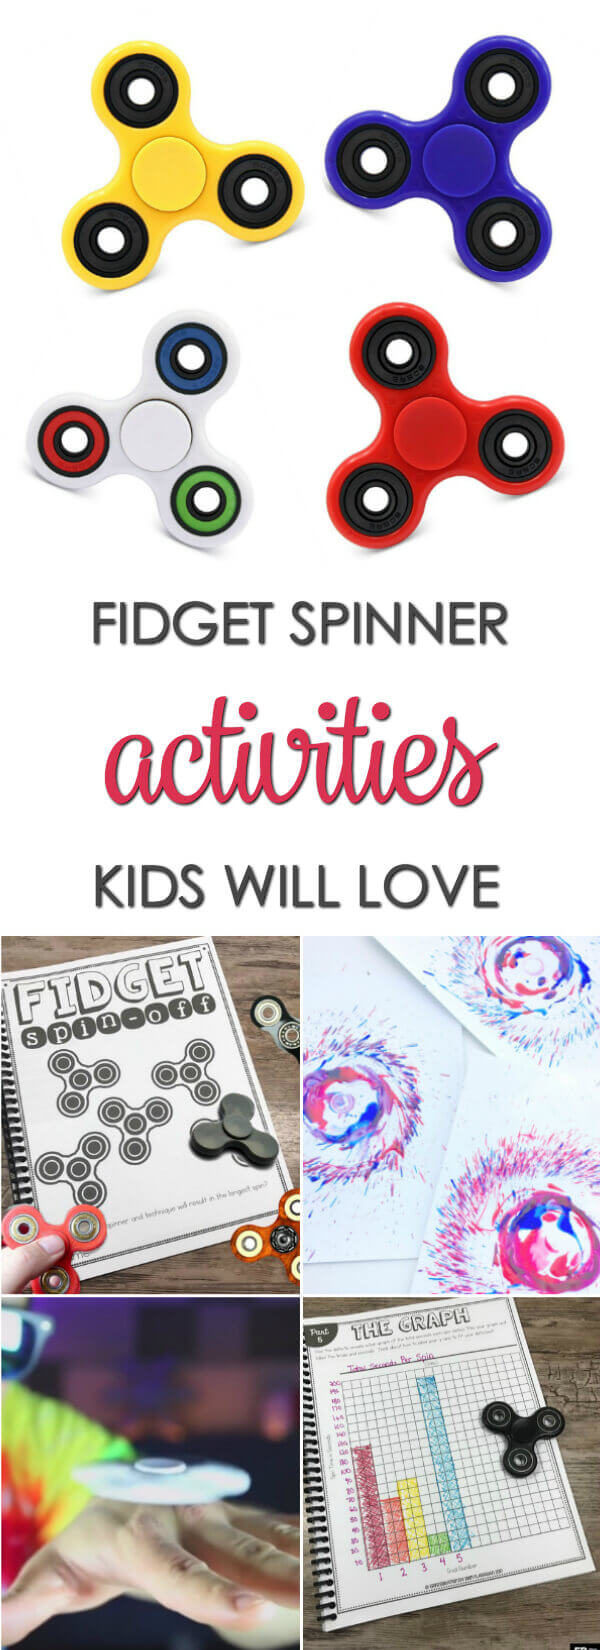 Fidget Spinner Activities Your Kids Will Love